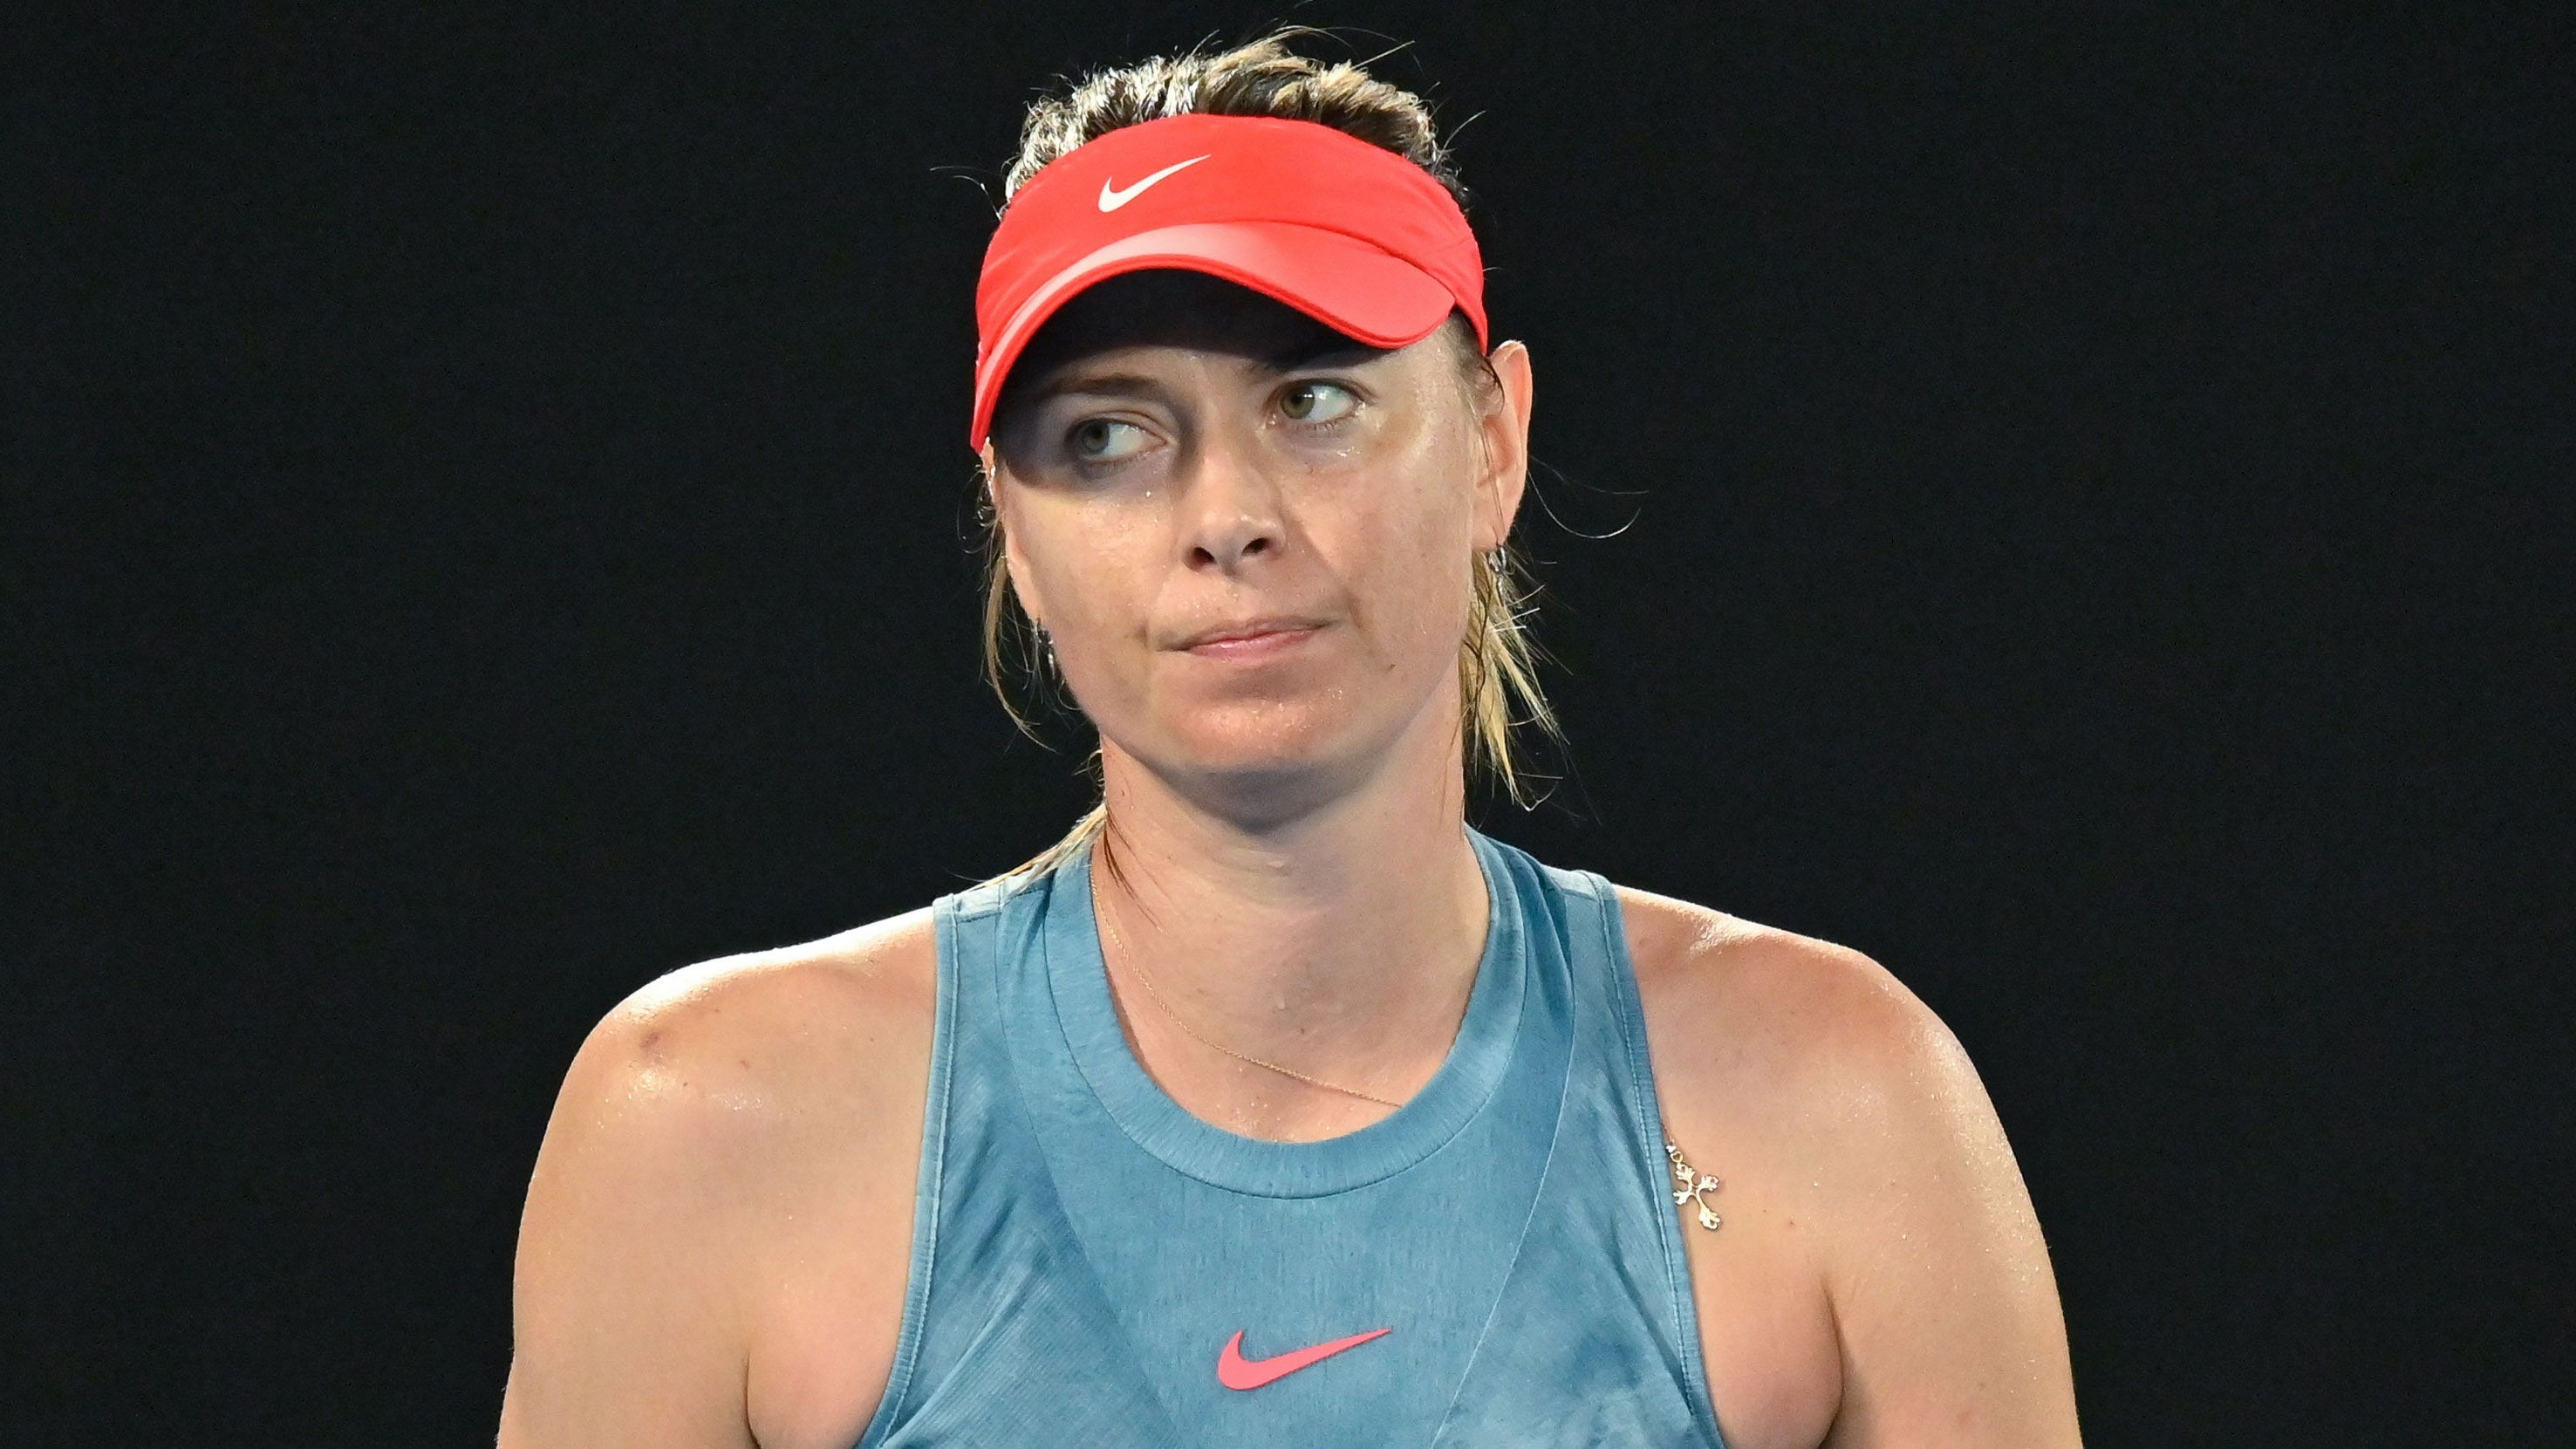 Maria Sharapova gets angry at reporter following Australian Open exit